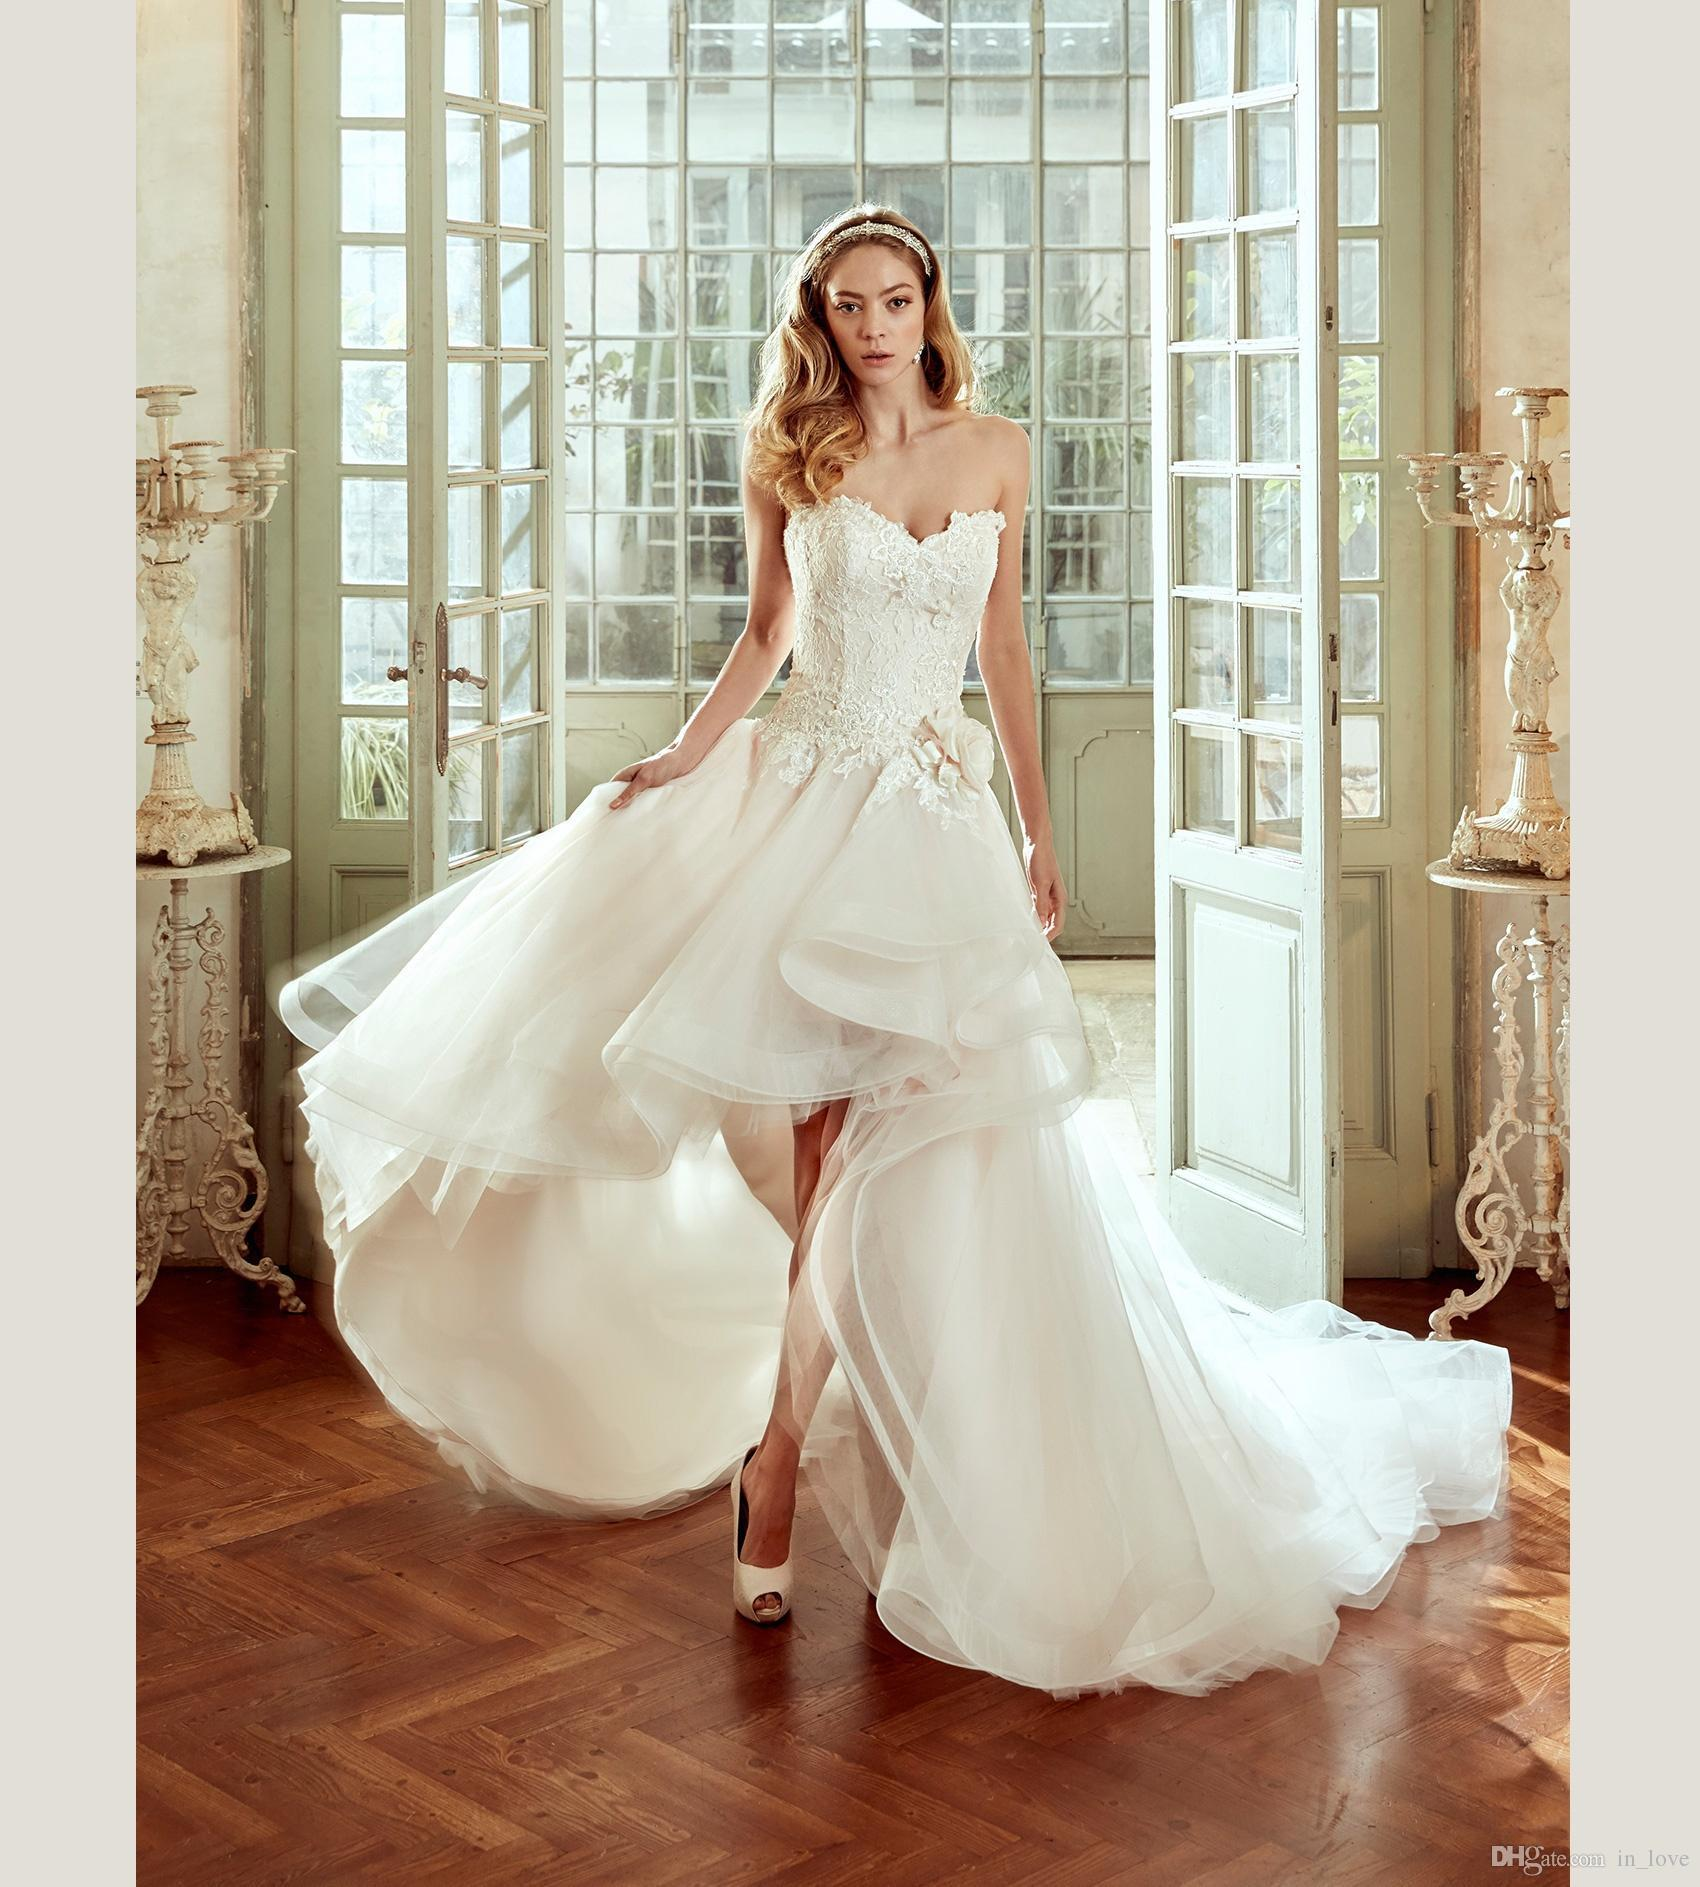 Discount Removable Skirt Wedding Dress Sweetheart Handmade Flower Lace Tulle Short Front Long Back Bridal Gowns Custom Made Discount Wedding Dress Fashion Wedding Dresses From In Love 139 3 Dhgate Com